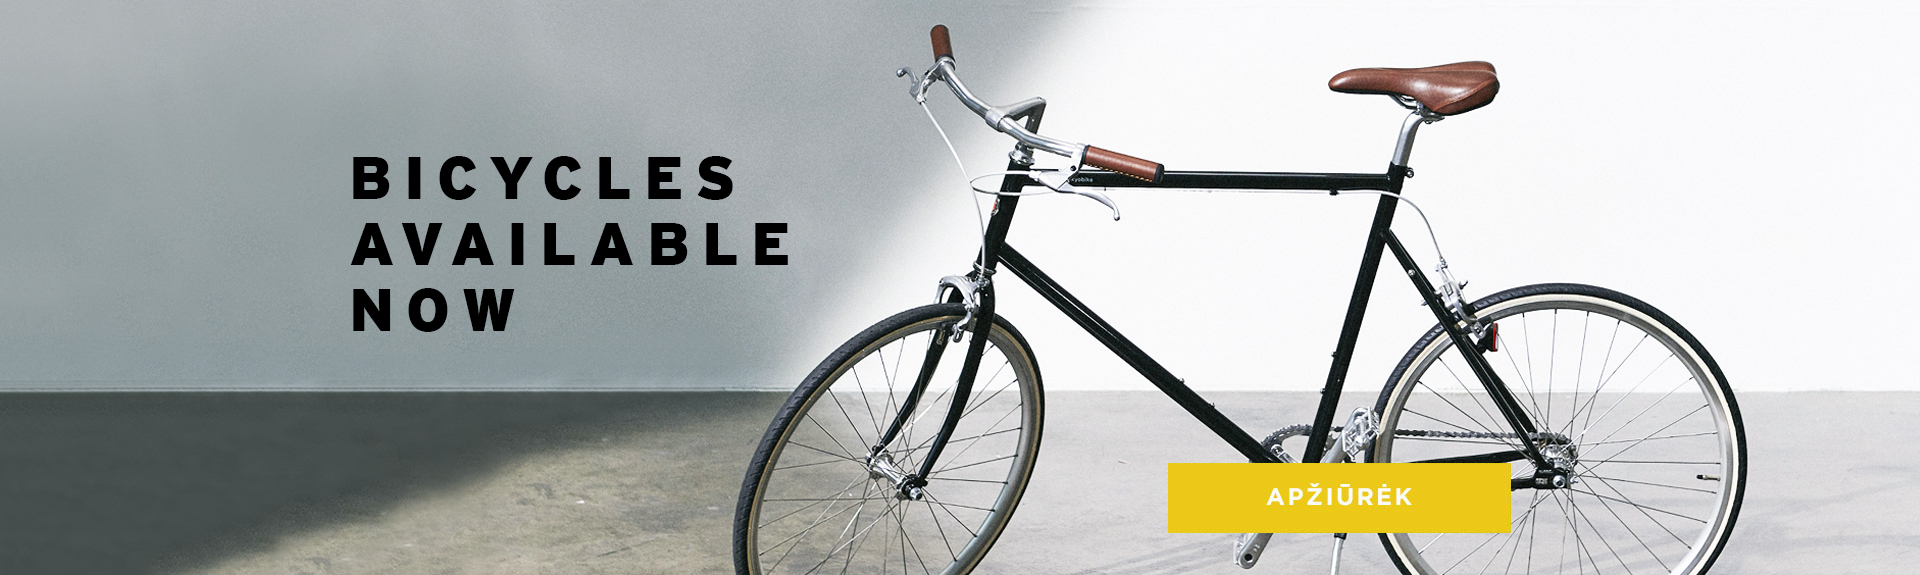 bicycles available now